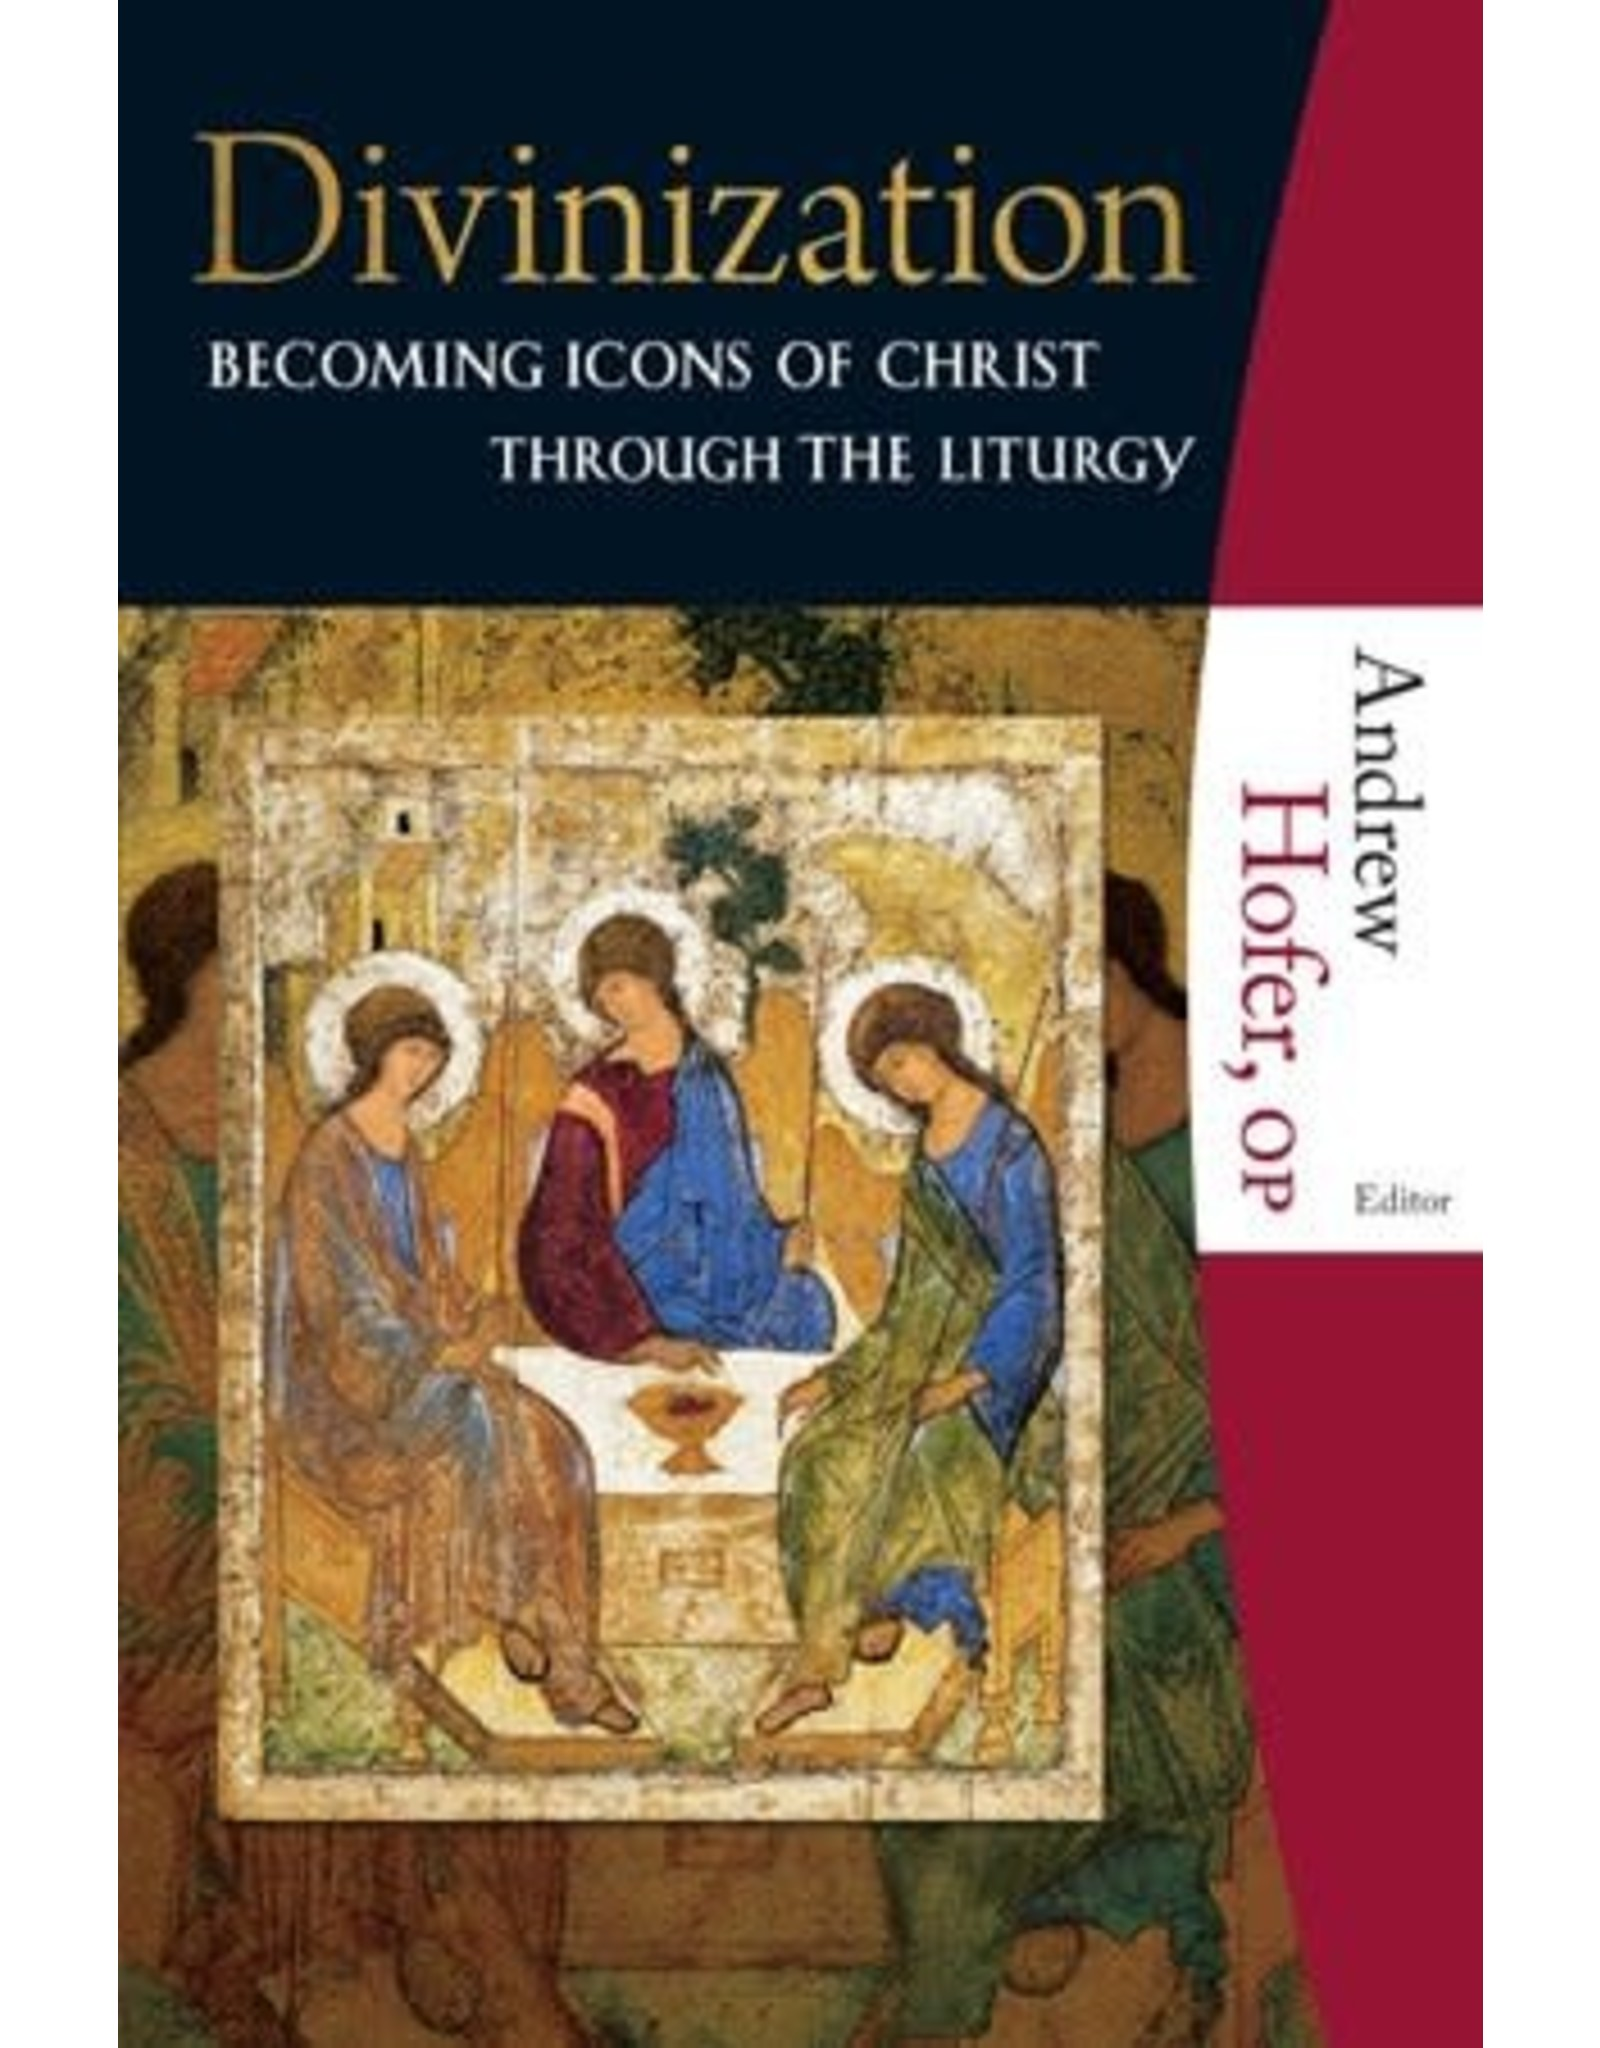 Divinization: Becoming Icons of Christ through the Liturgy